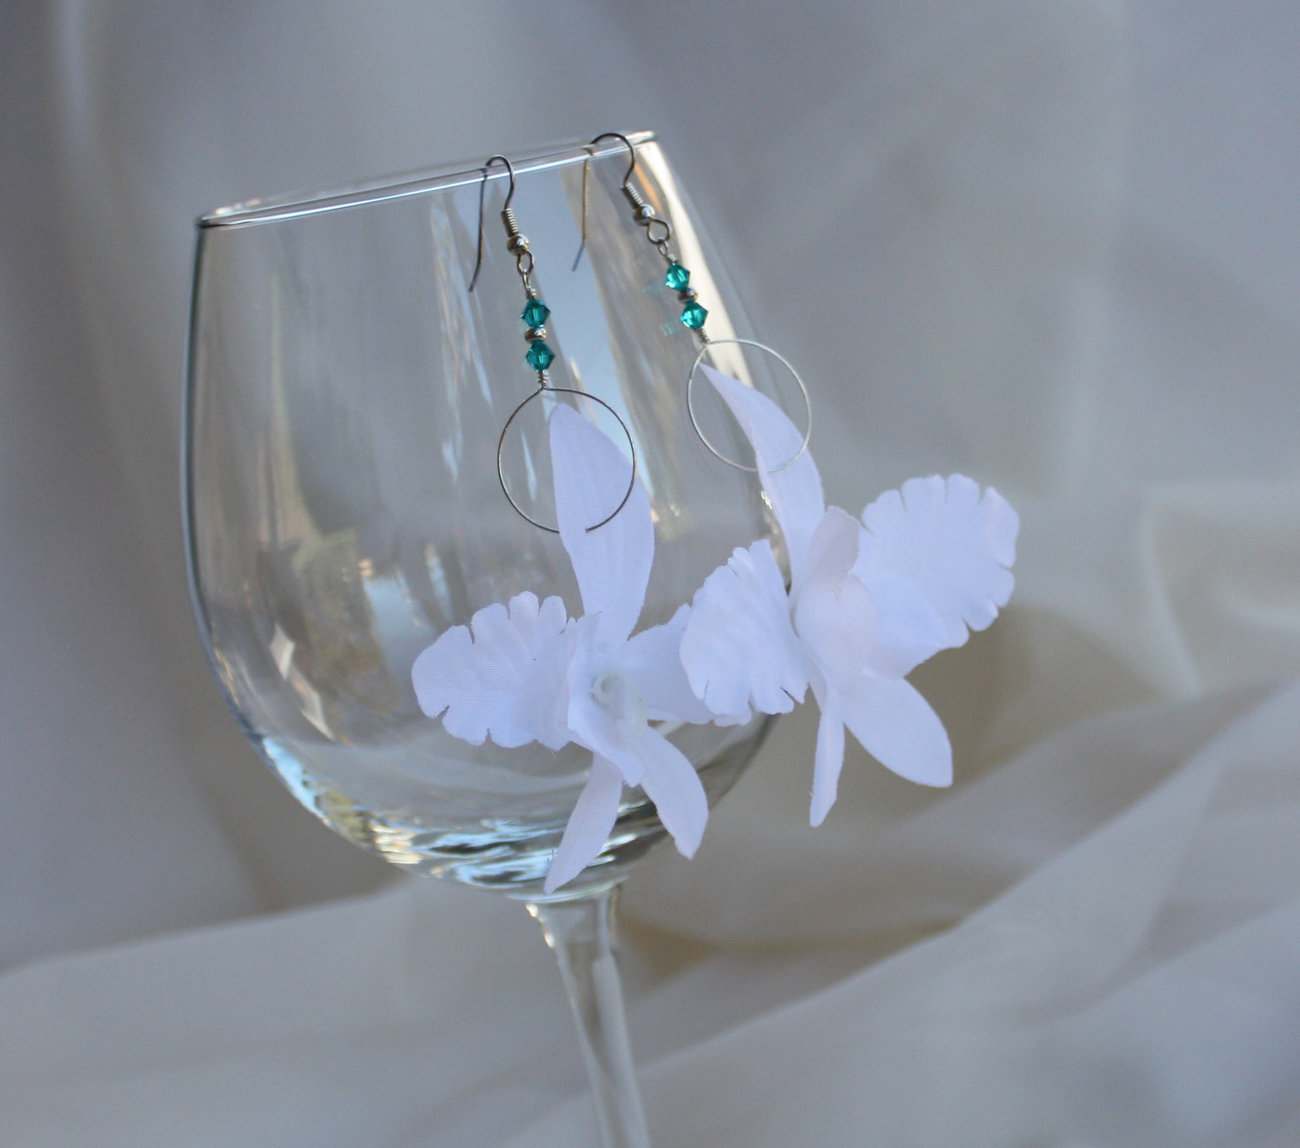 White Silk Orchid Flower Earrings with Swarovski Crystals